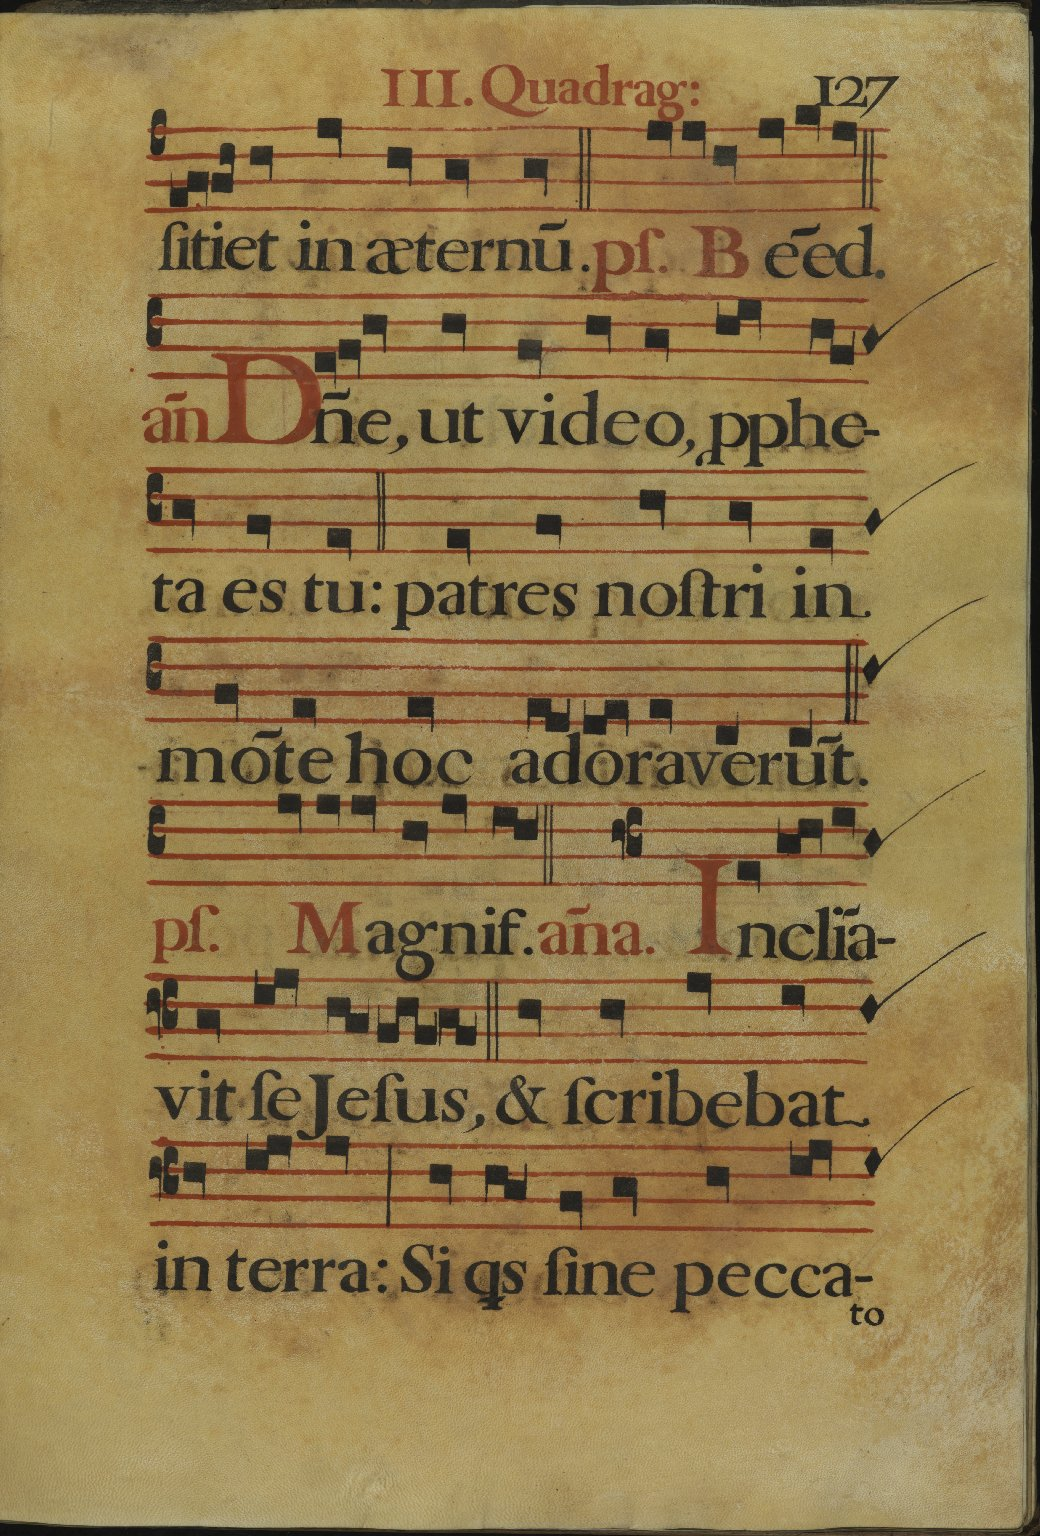 The Spanish Antiphoner. Page 127